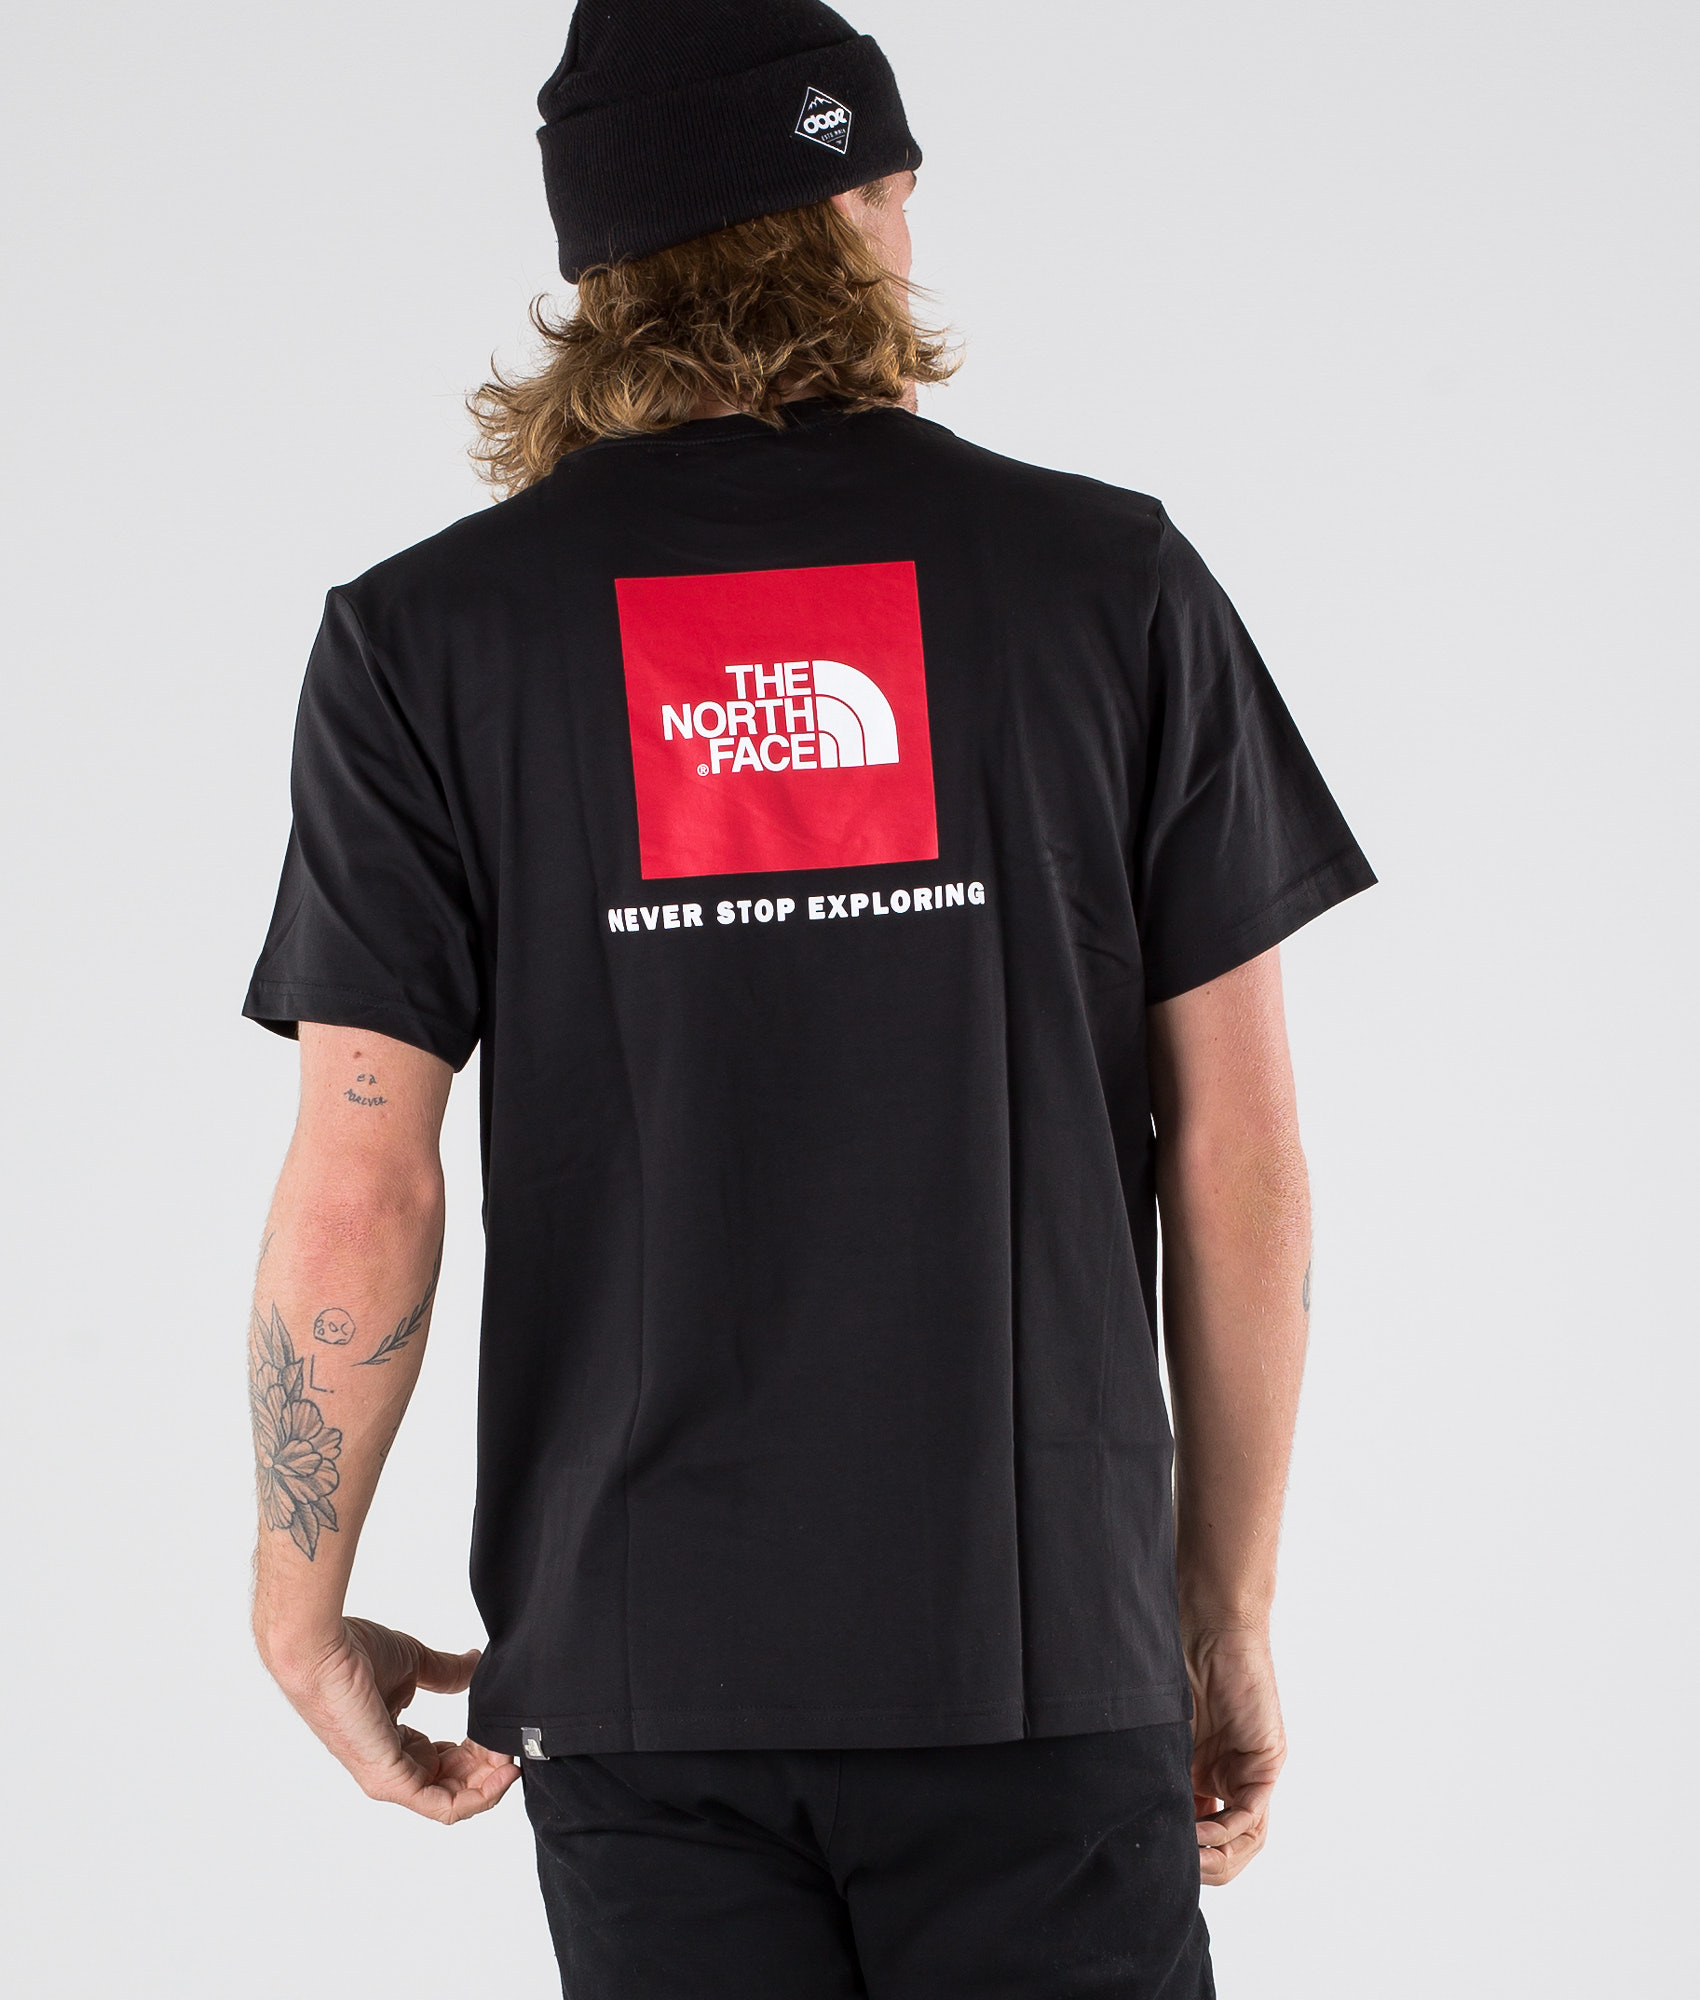 65cb1c9fc The North Face Red Box T-shirt Black